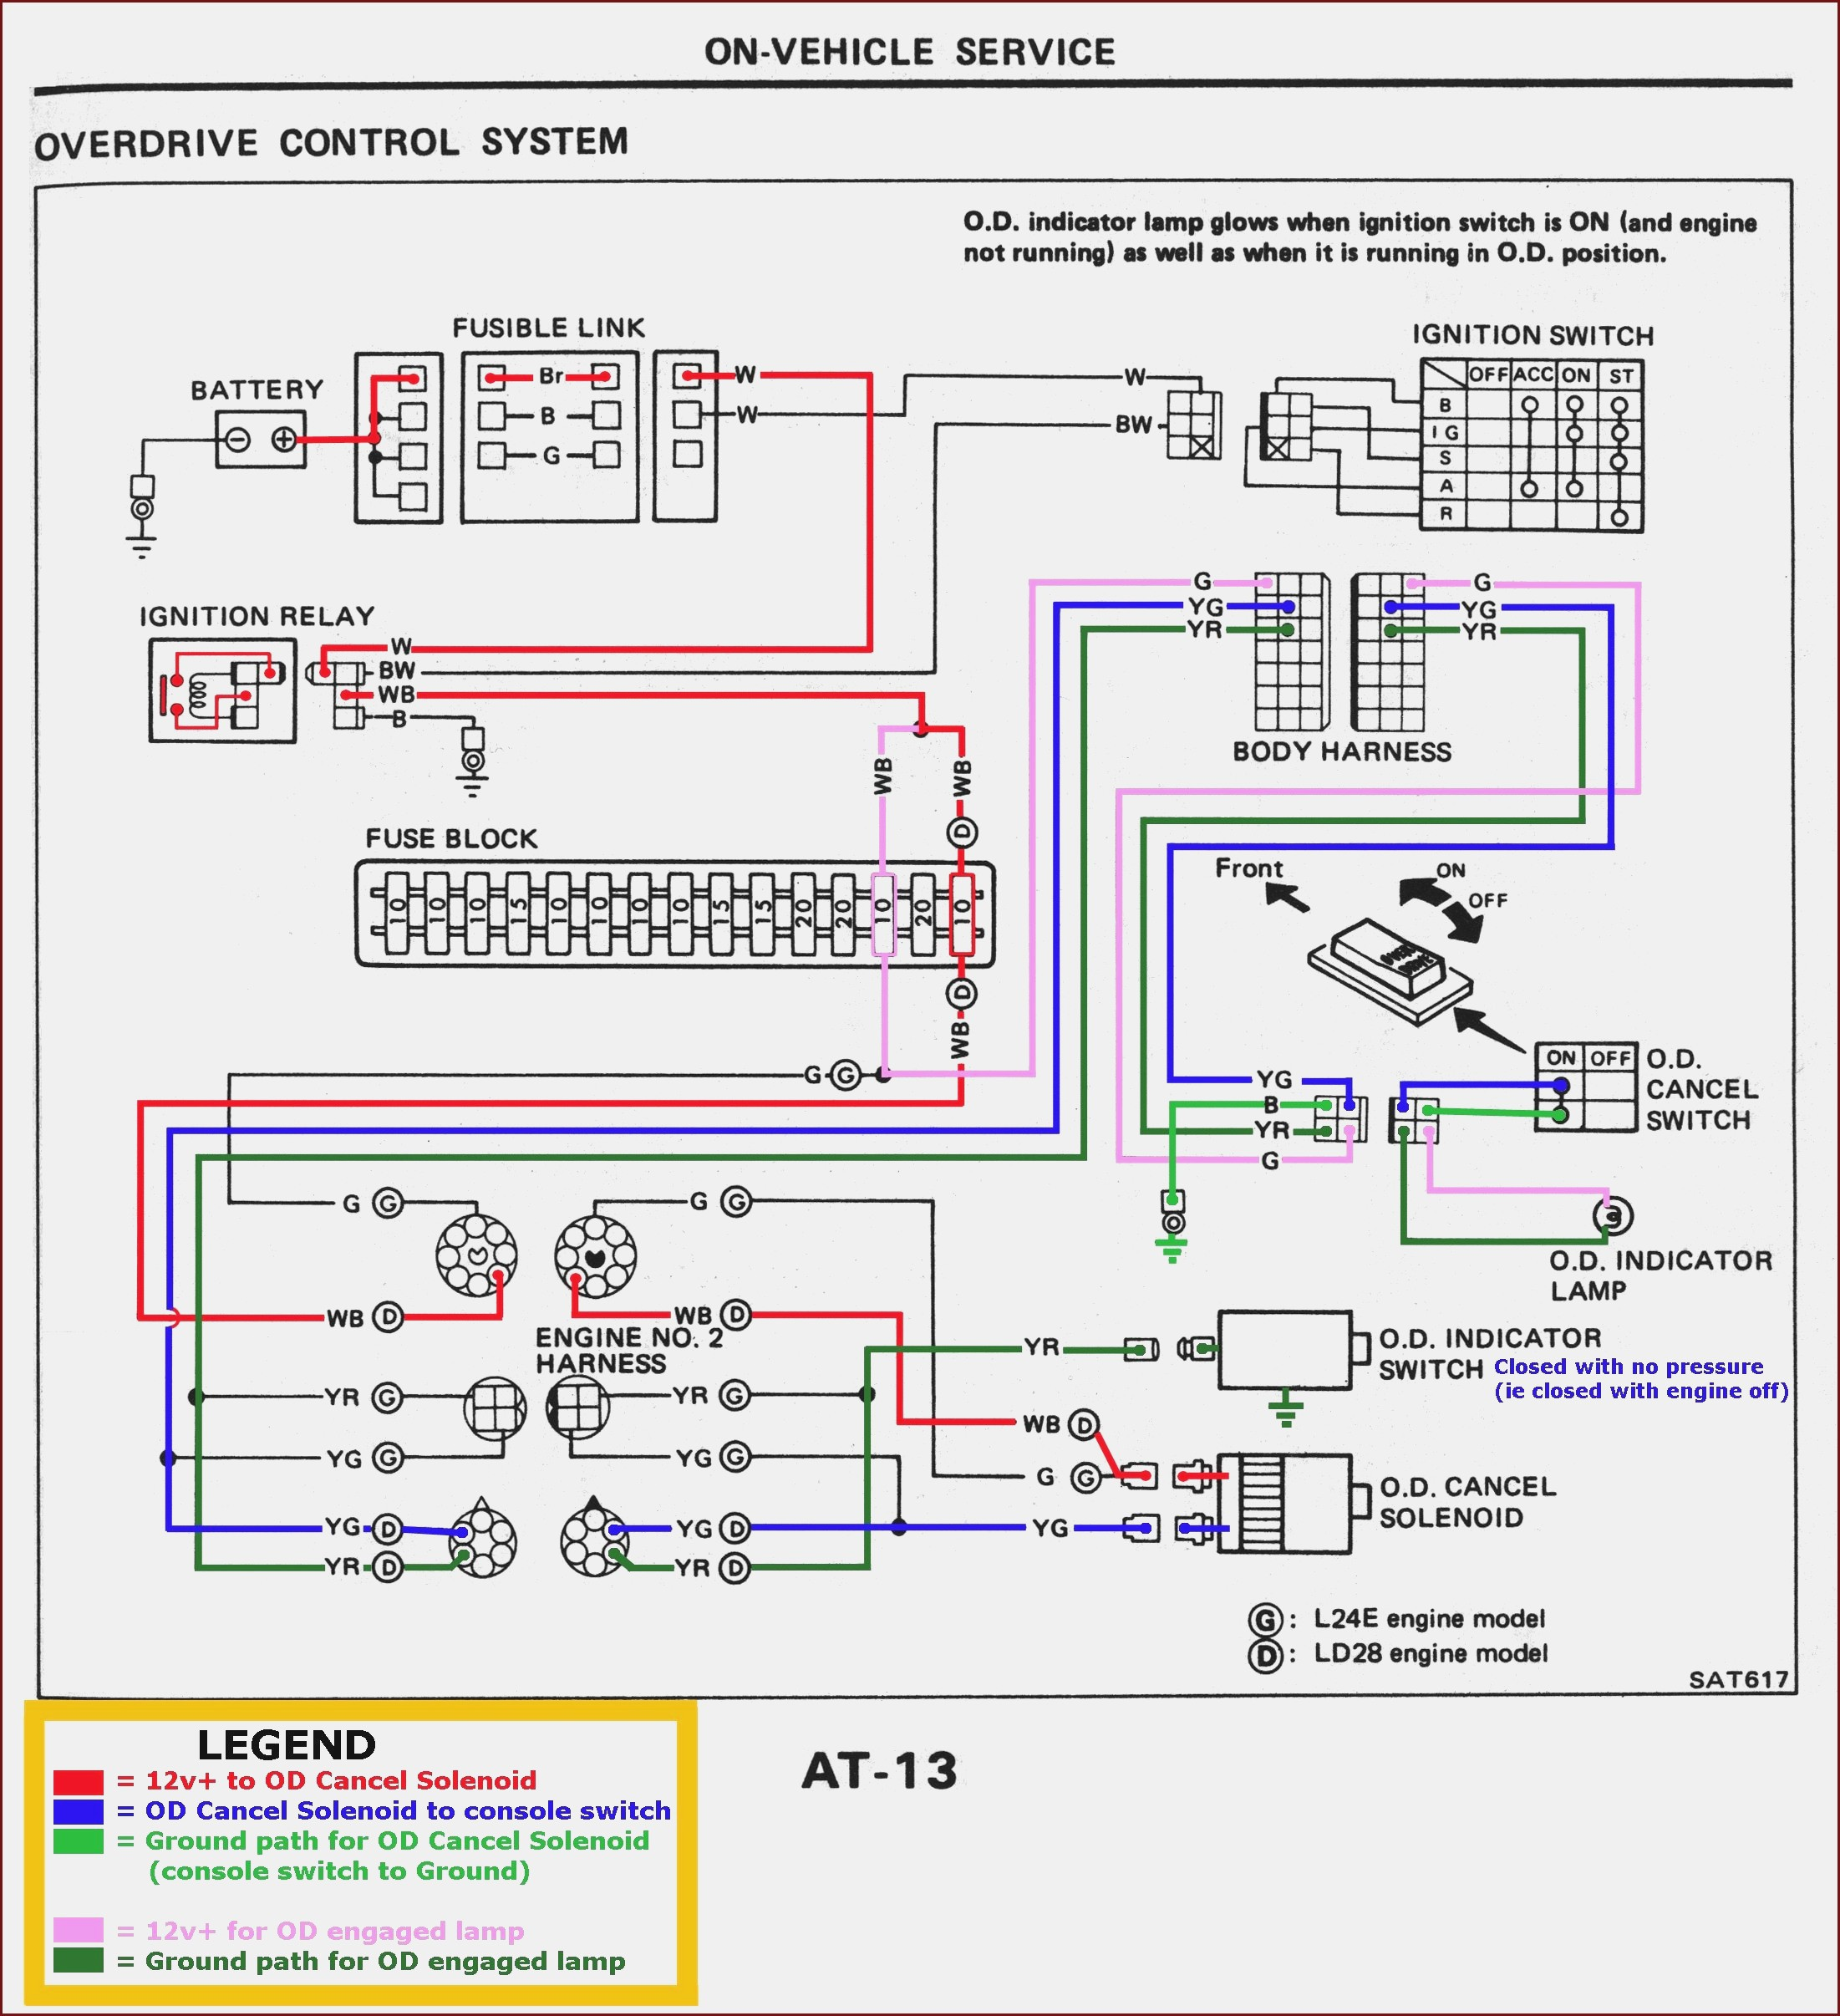 97 Honda Accord Engine Diagram 94a37 Honda Hobbit Wiring Diagram